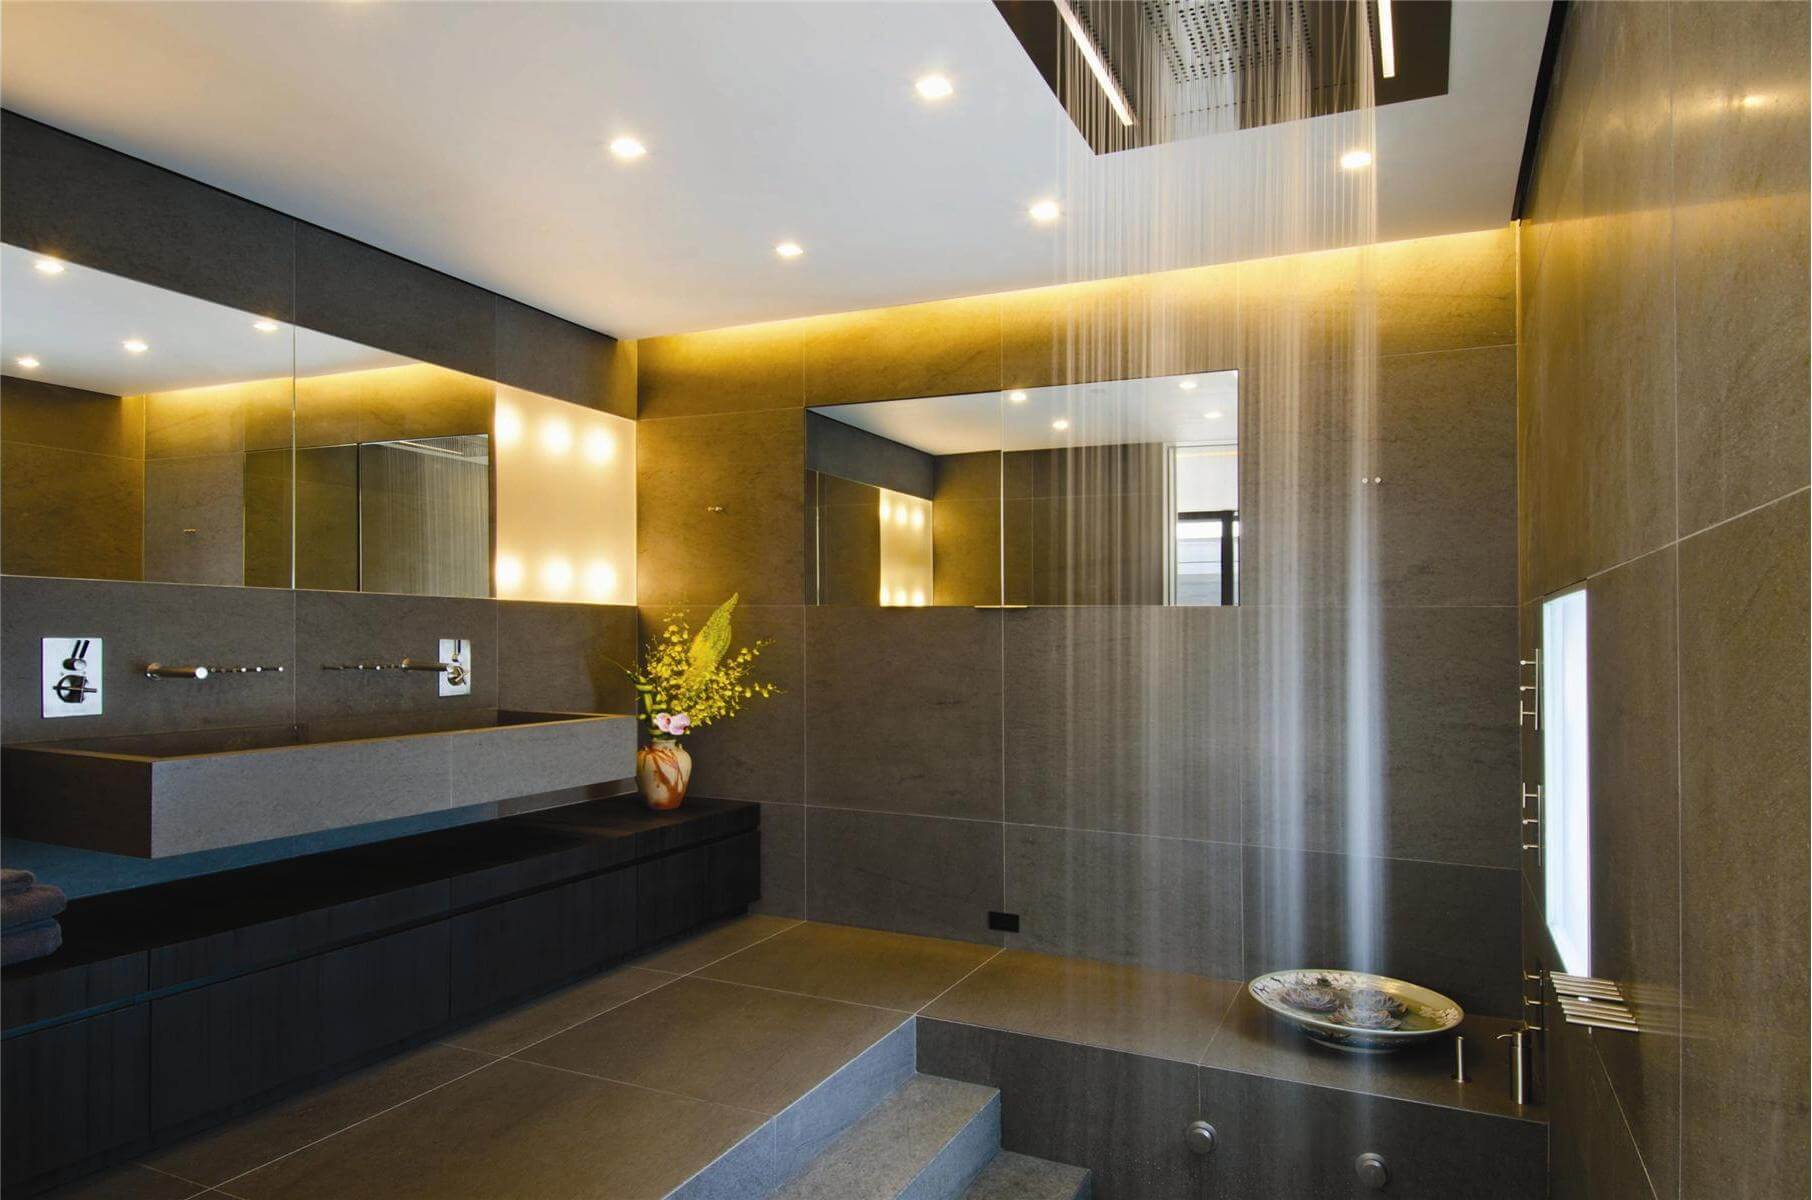 bathroom design ideas - Bathroom Designs And Ideas